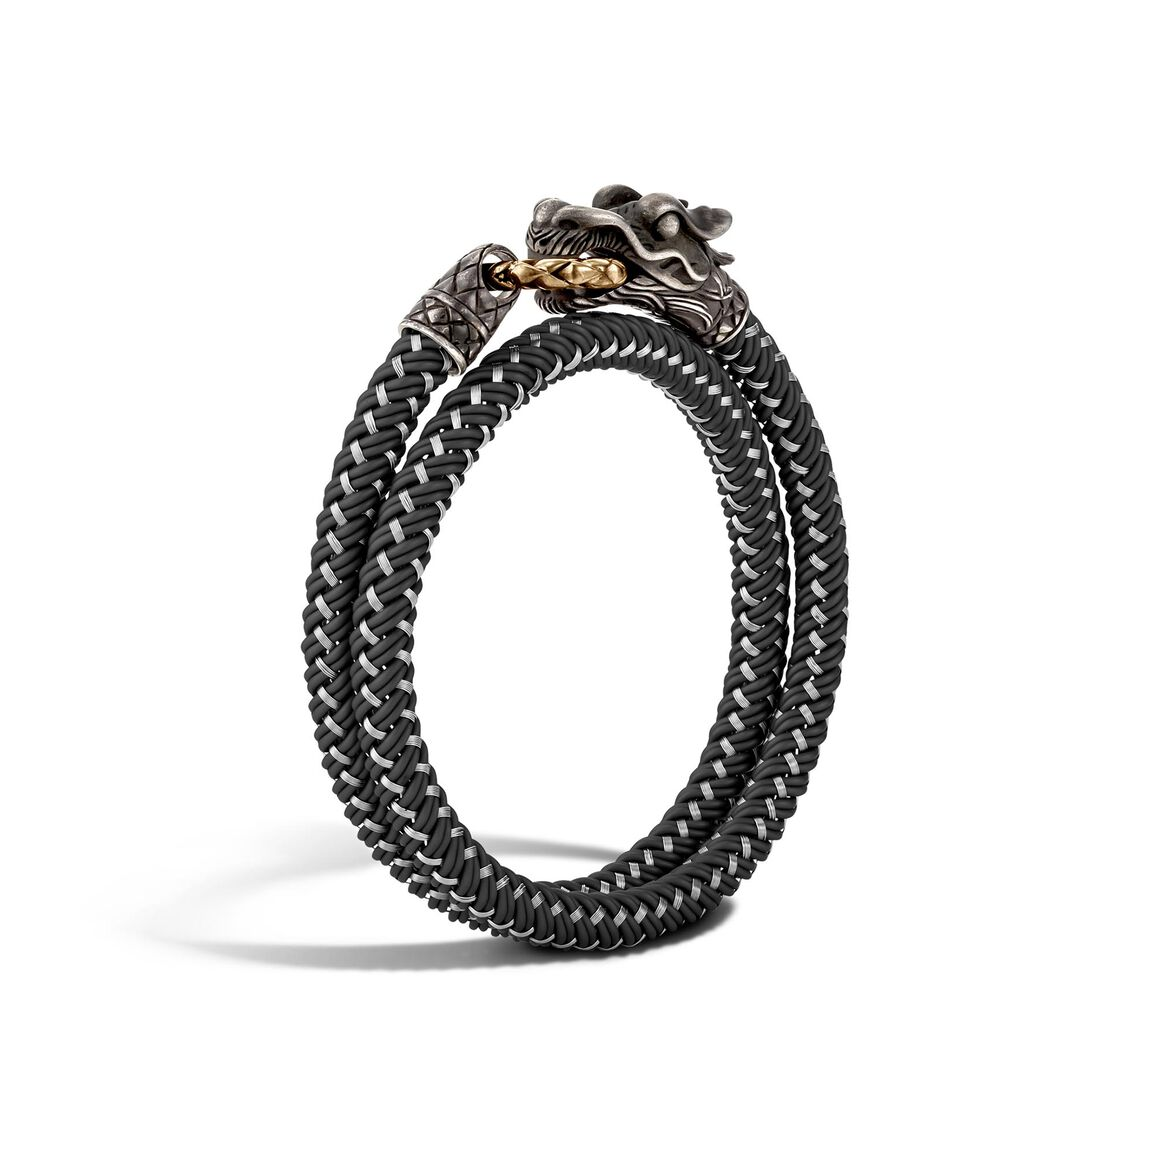 Legends Naga Wrap Bracelet In Silver and Bronze